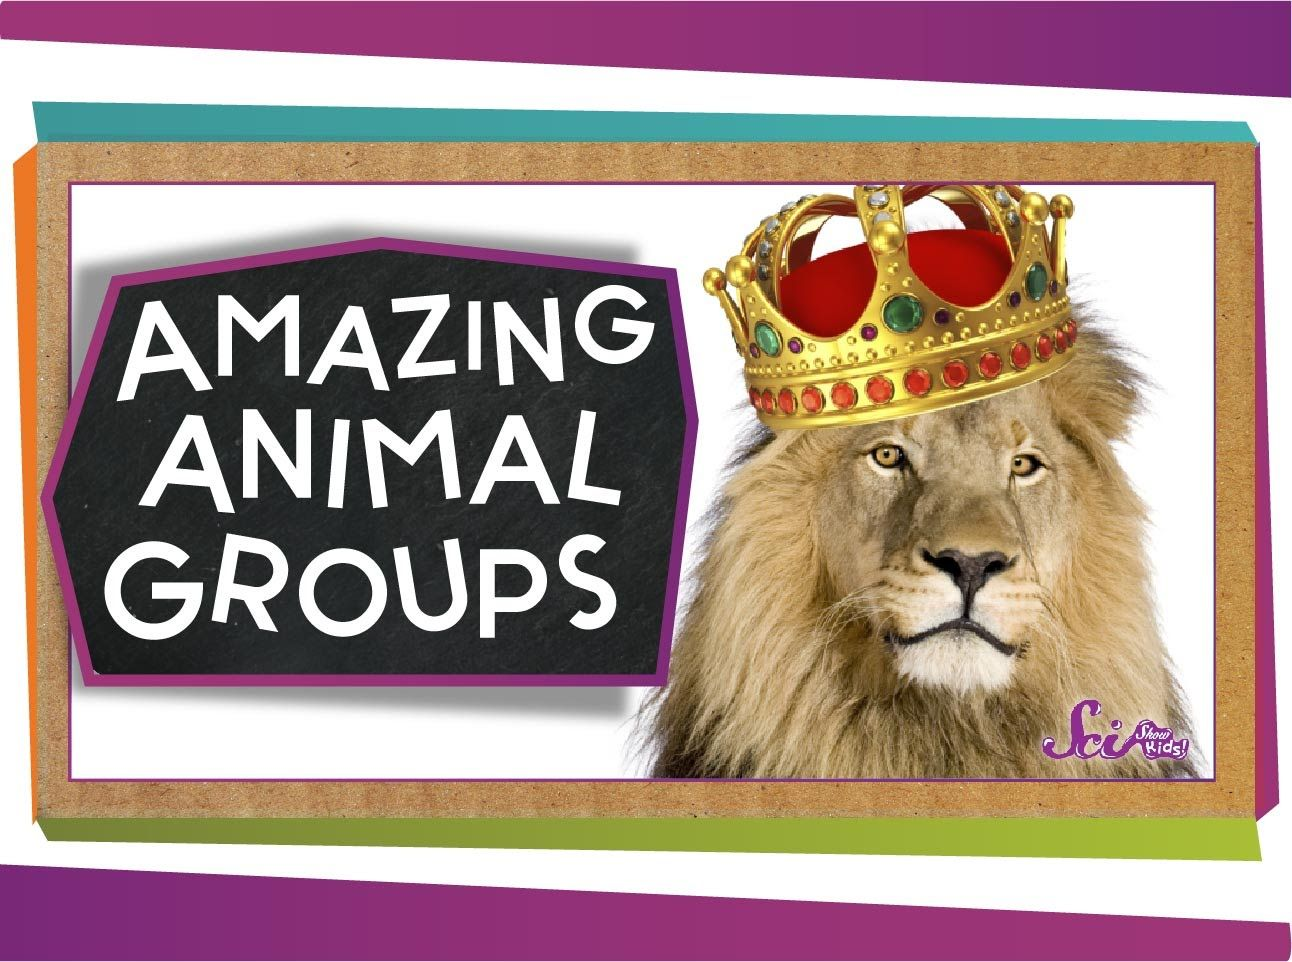 Groups Of Animals Have Some Awesome Names Learn About